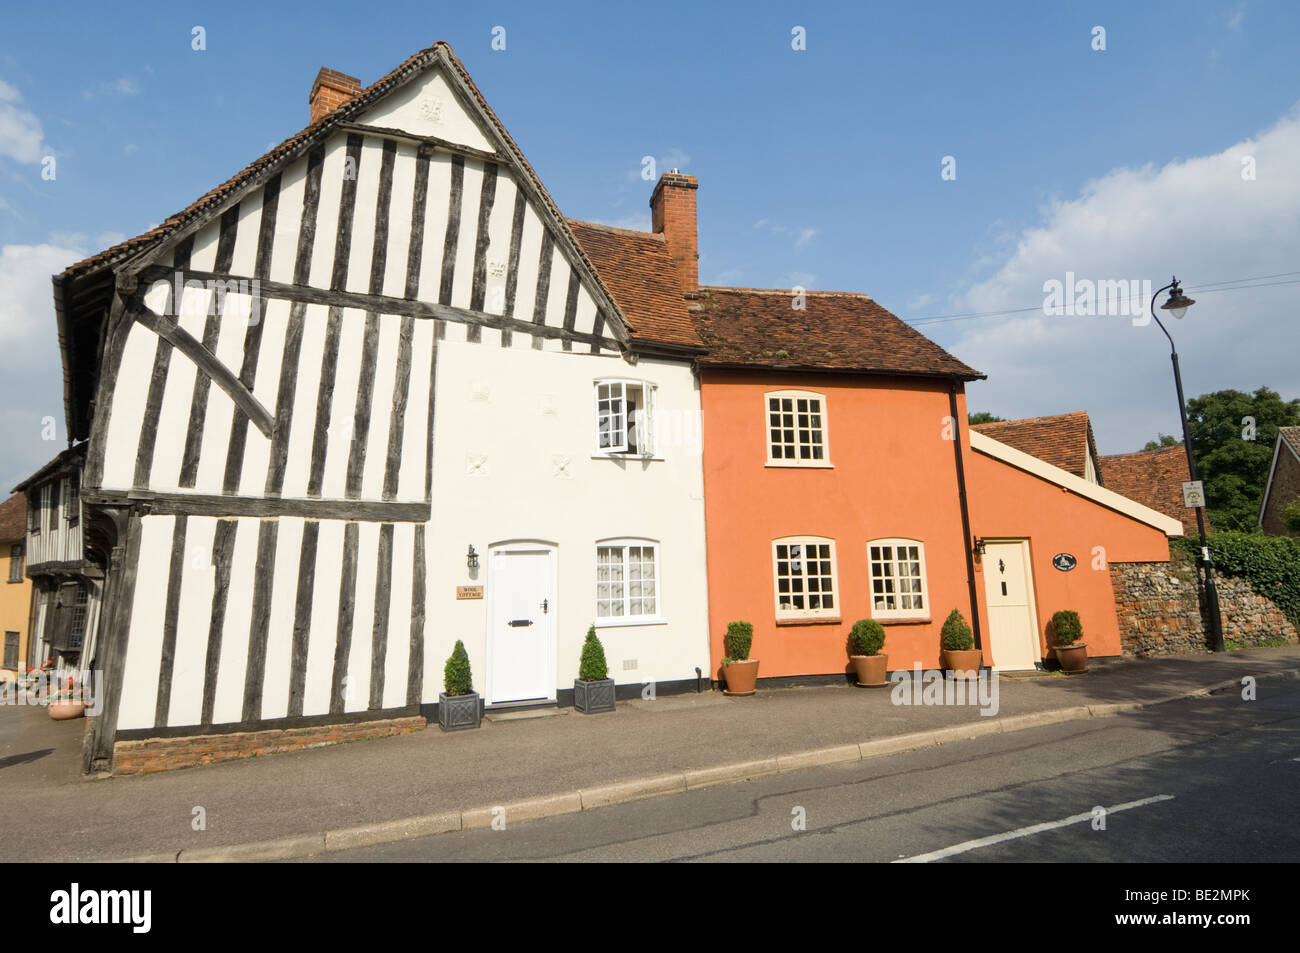 Lavenham Suffolk UK - Stock Image